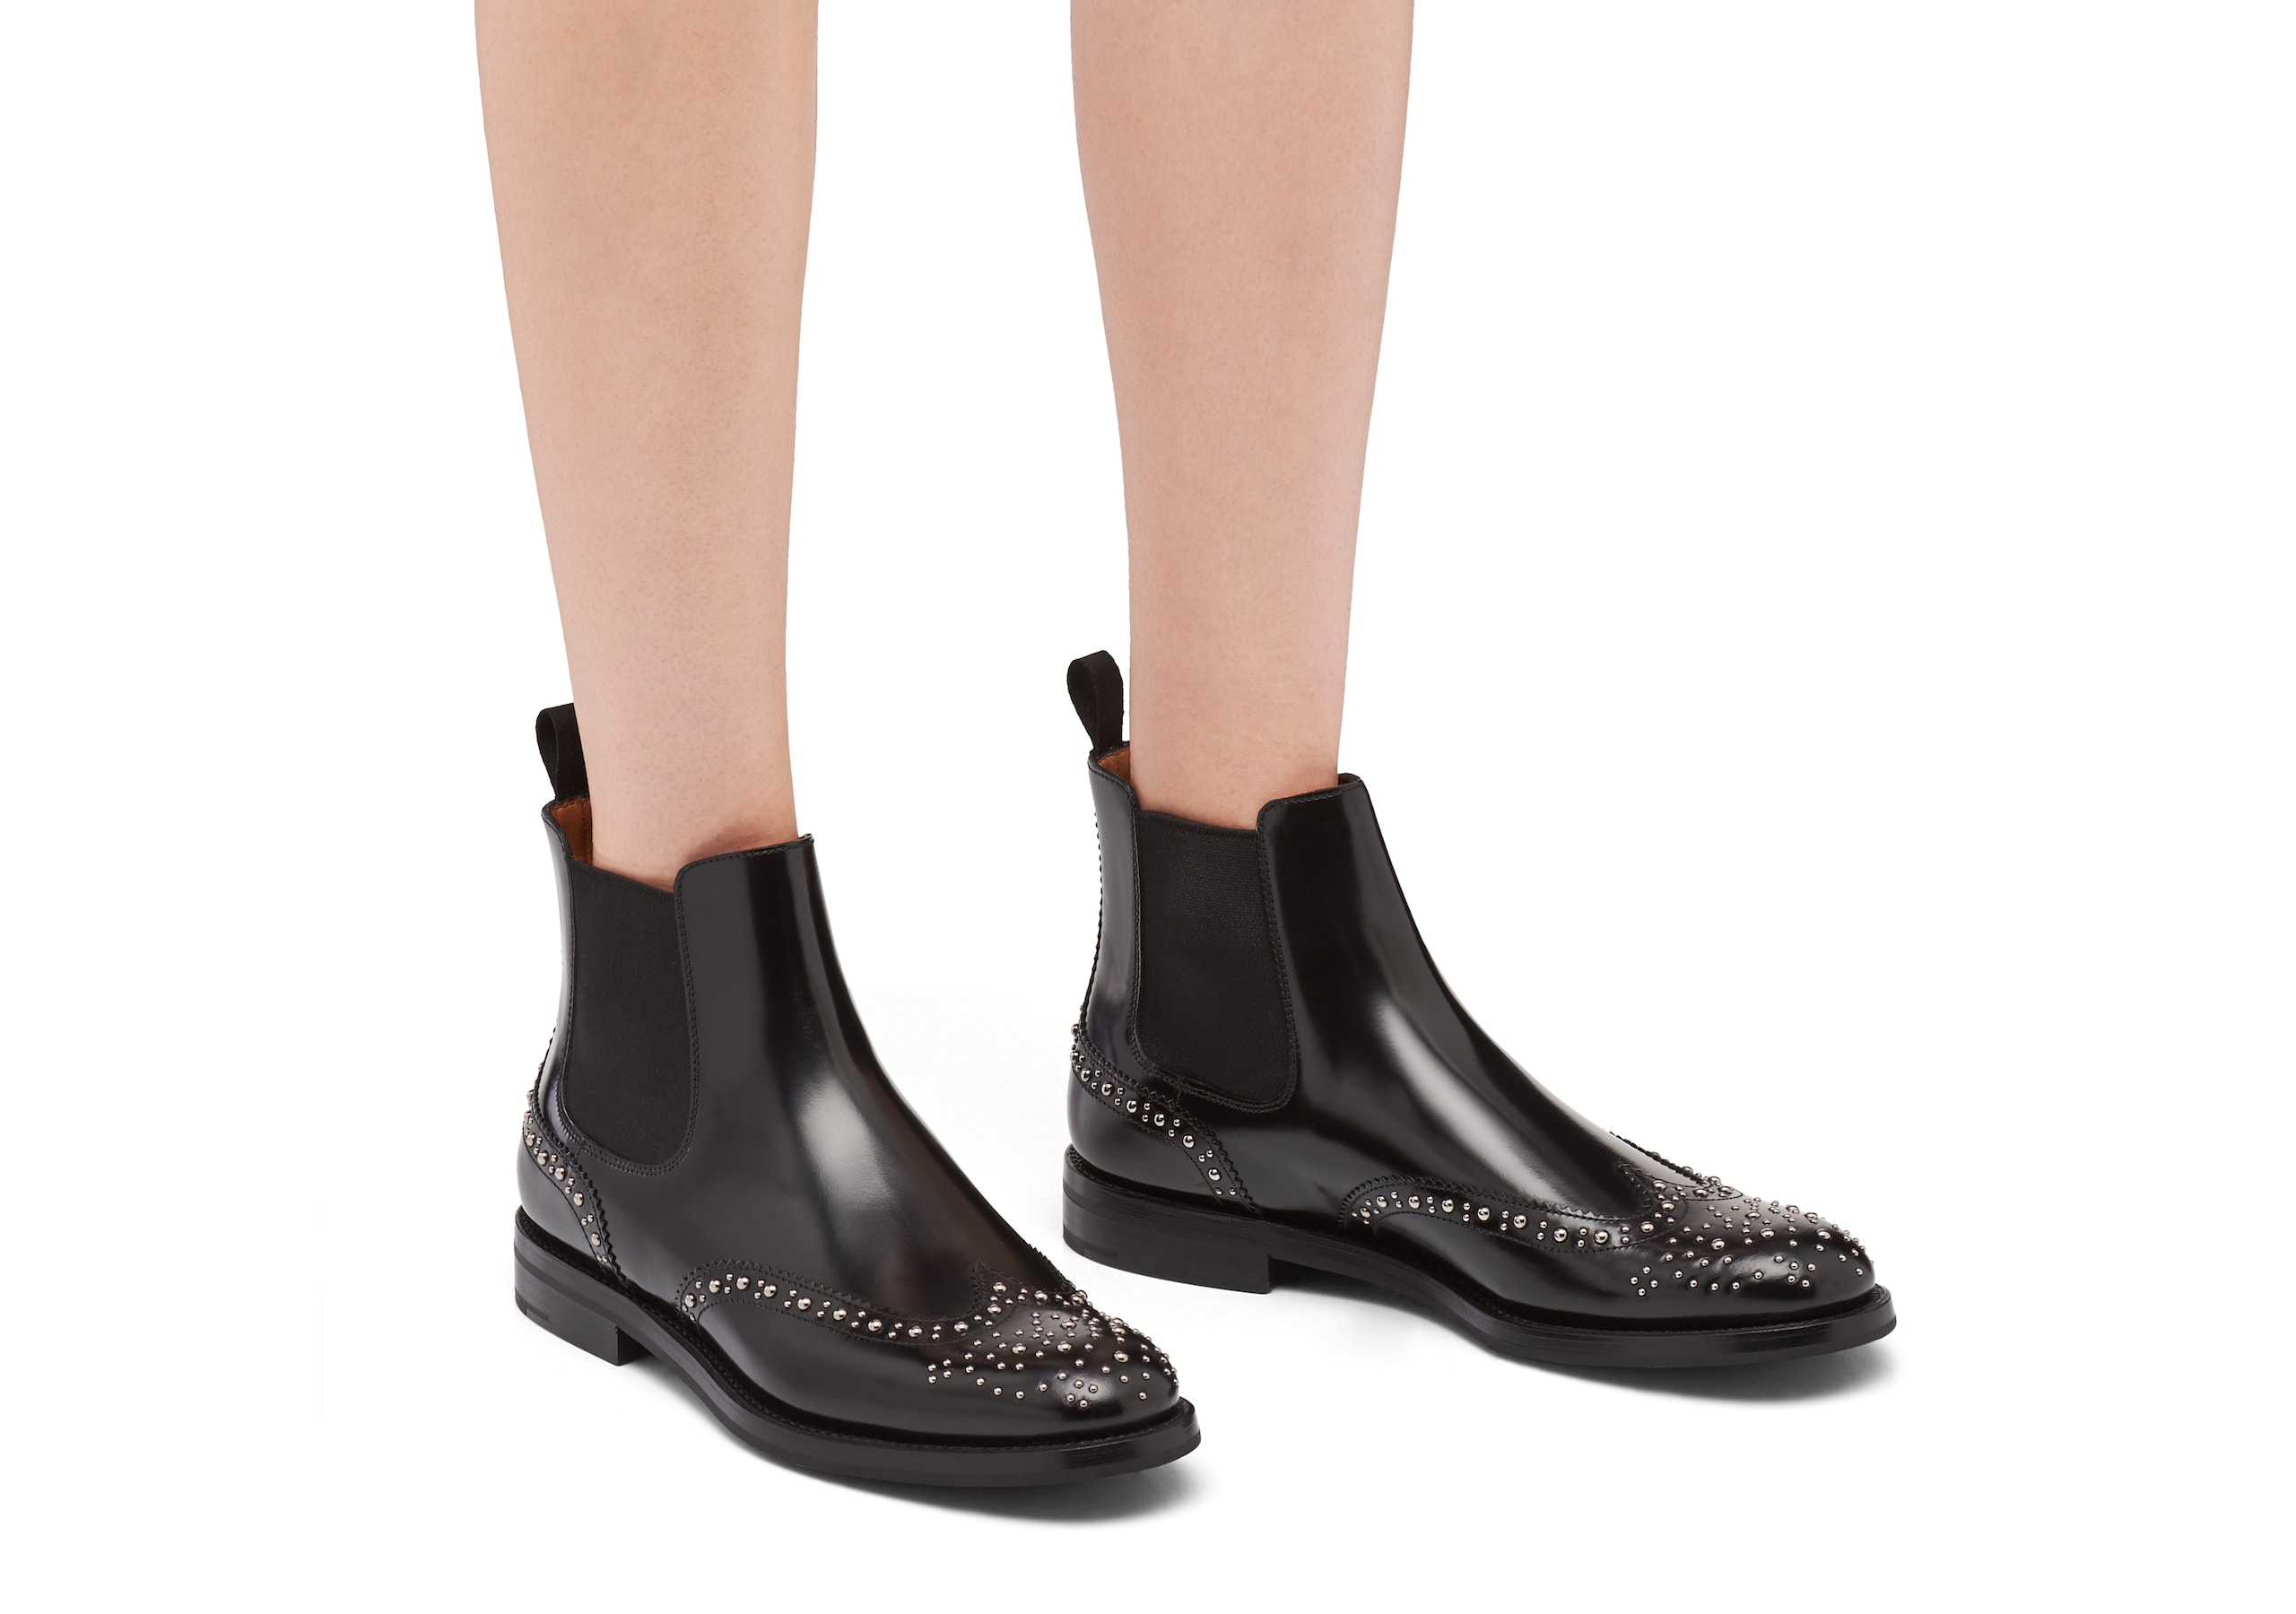 Ketsby met Church's Polished Binder Chelsea Boot  Stud Black